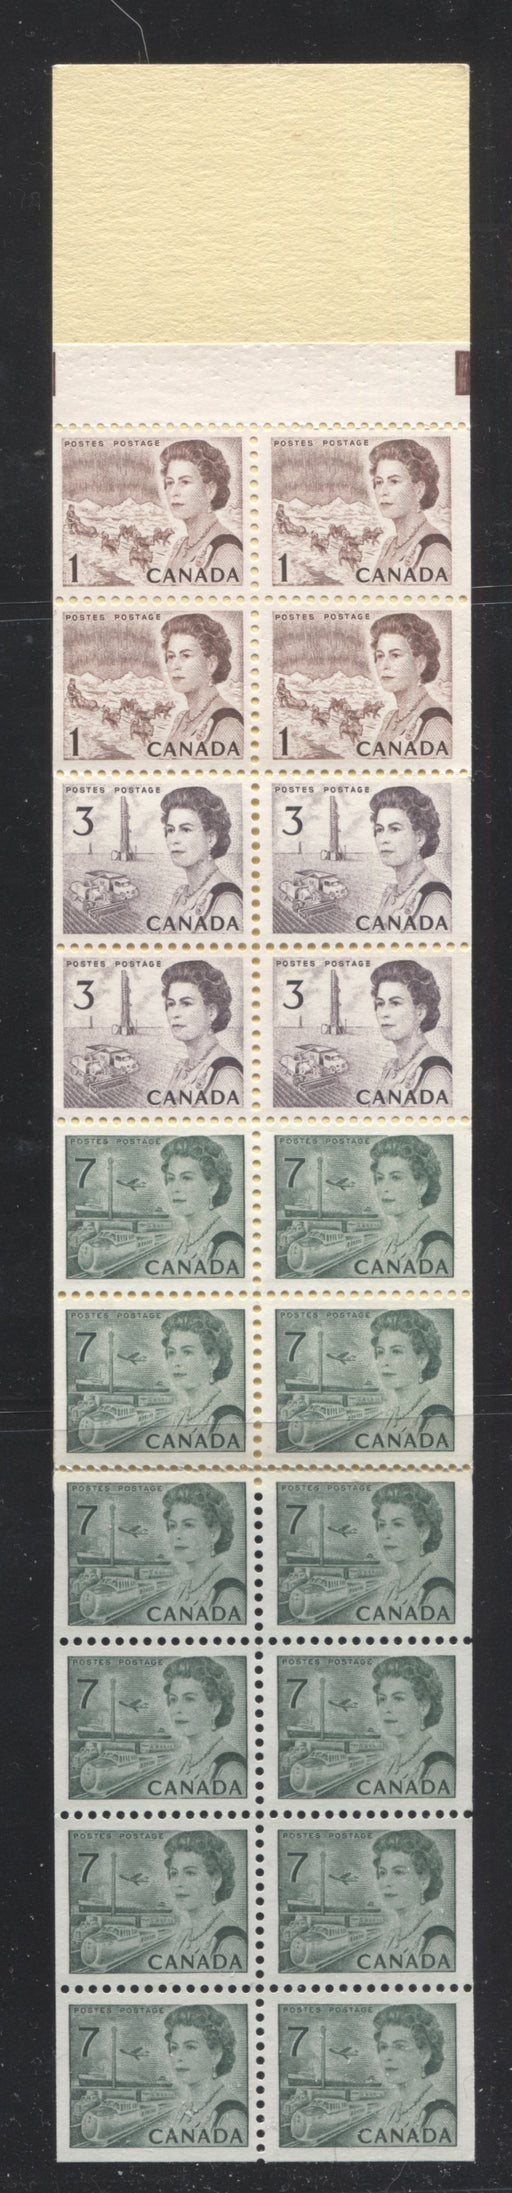 Canada #BK67 1967-1973 Centennial Issue, Complete $1 Counter Booklet, Horizontal Wove Paper, Dull Paper Brixton Chrome VF-75